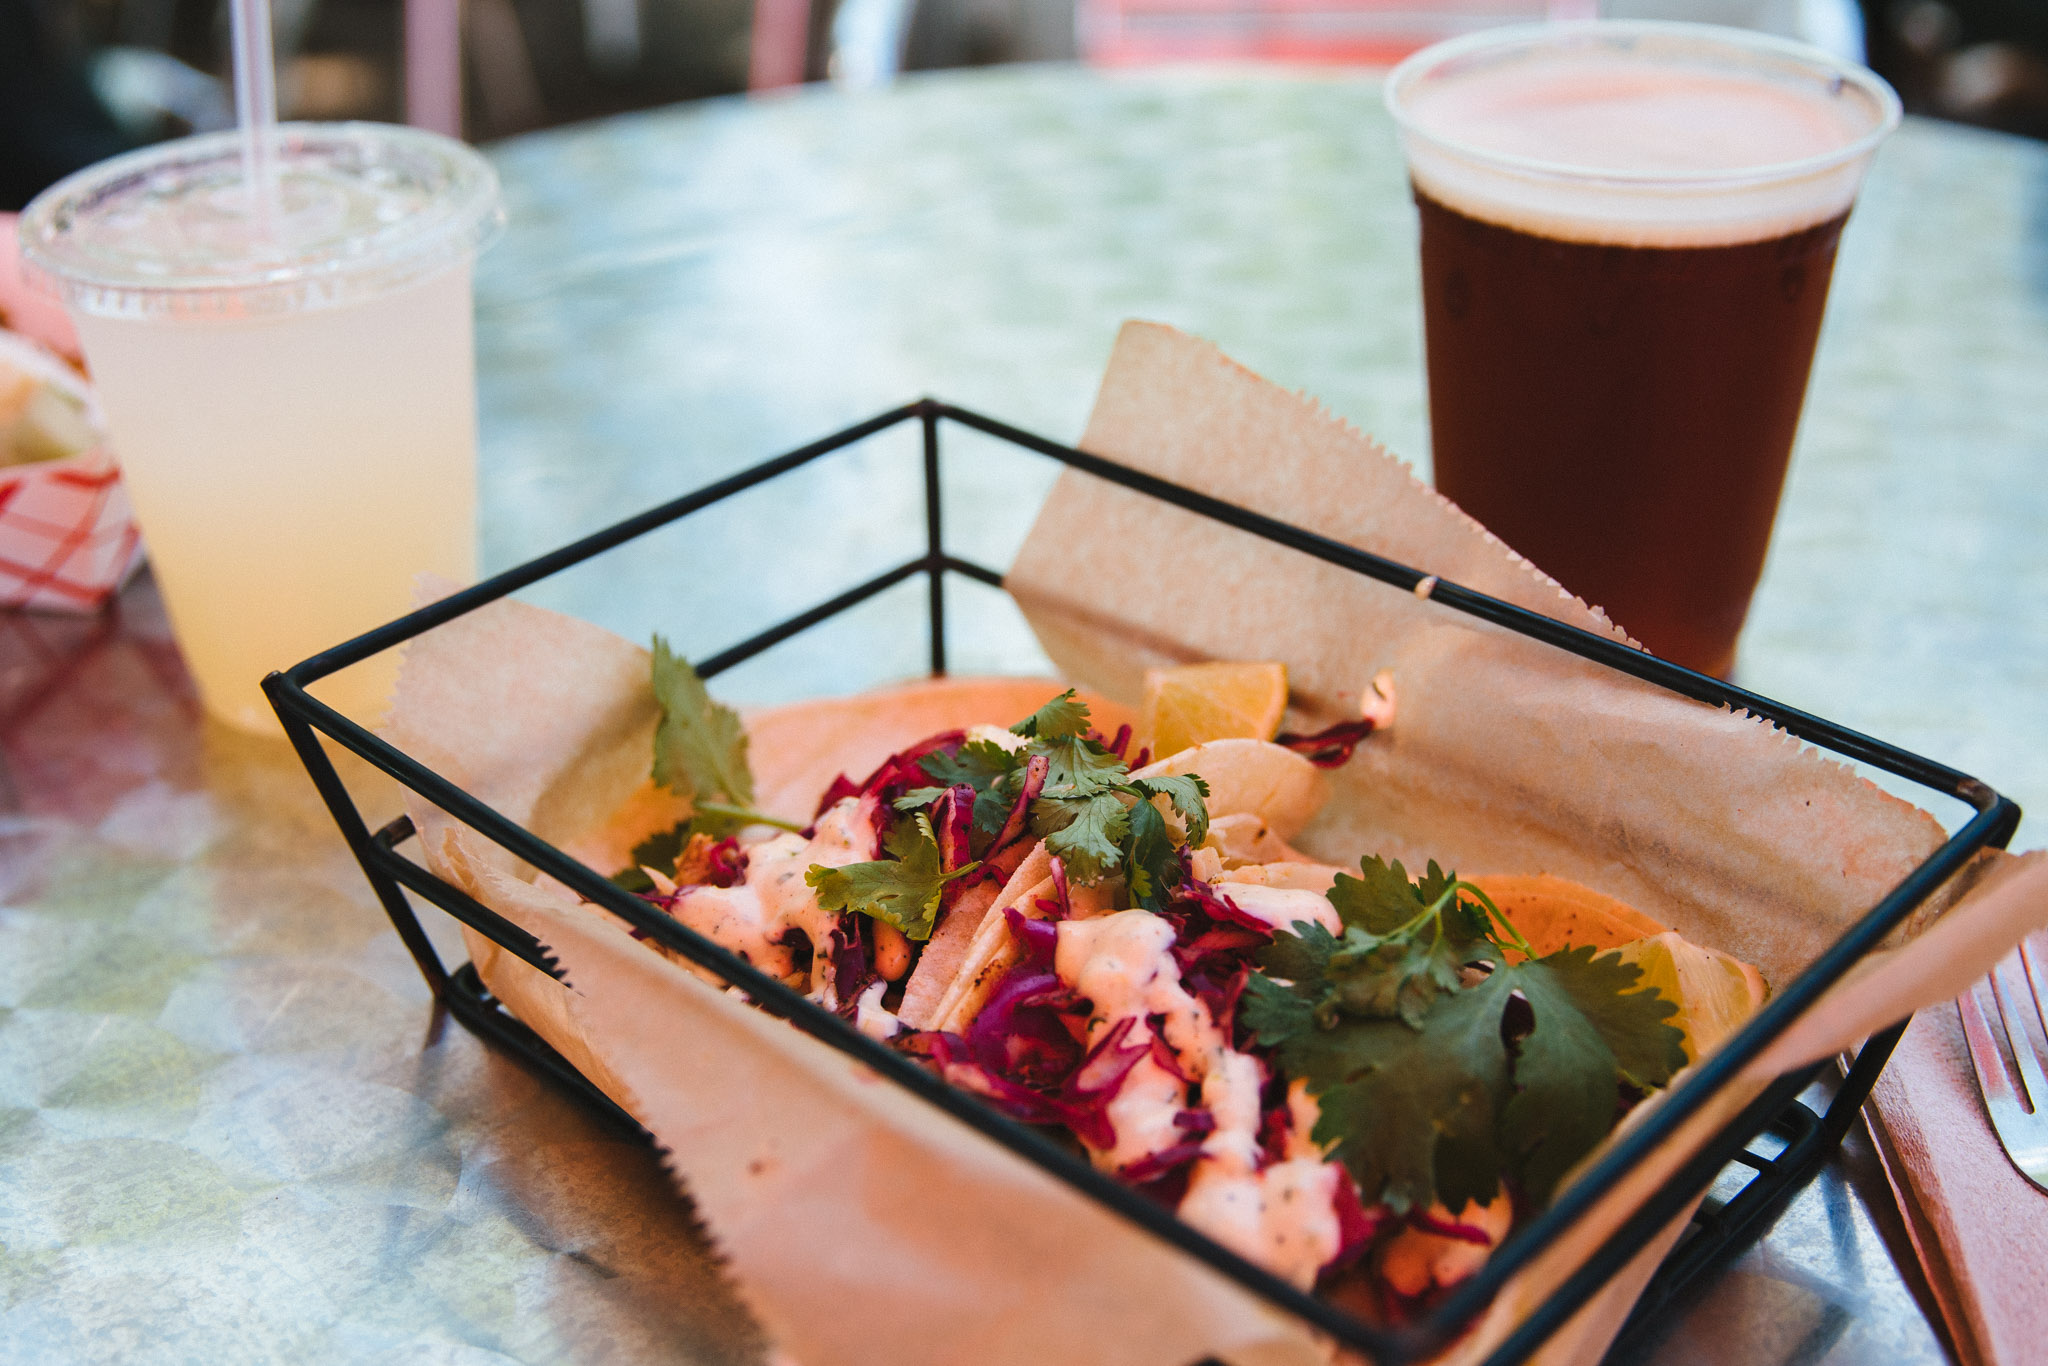 Beat the summer heat with some fish tacos, a cold brewski, and an ice-cold lemonade.  Dog Flicker - beef dog with kimchee, dried egg and cilantro and cheese curds on side